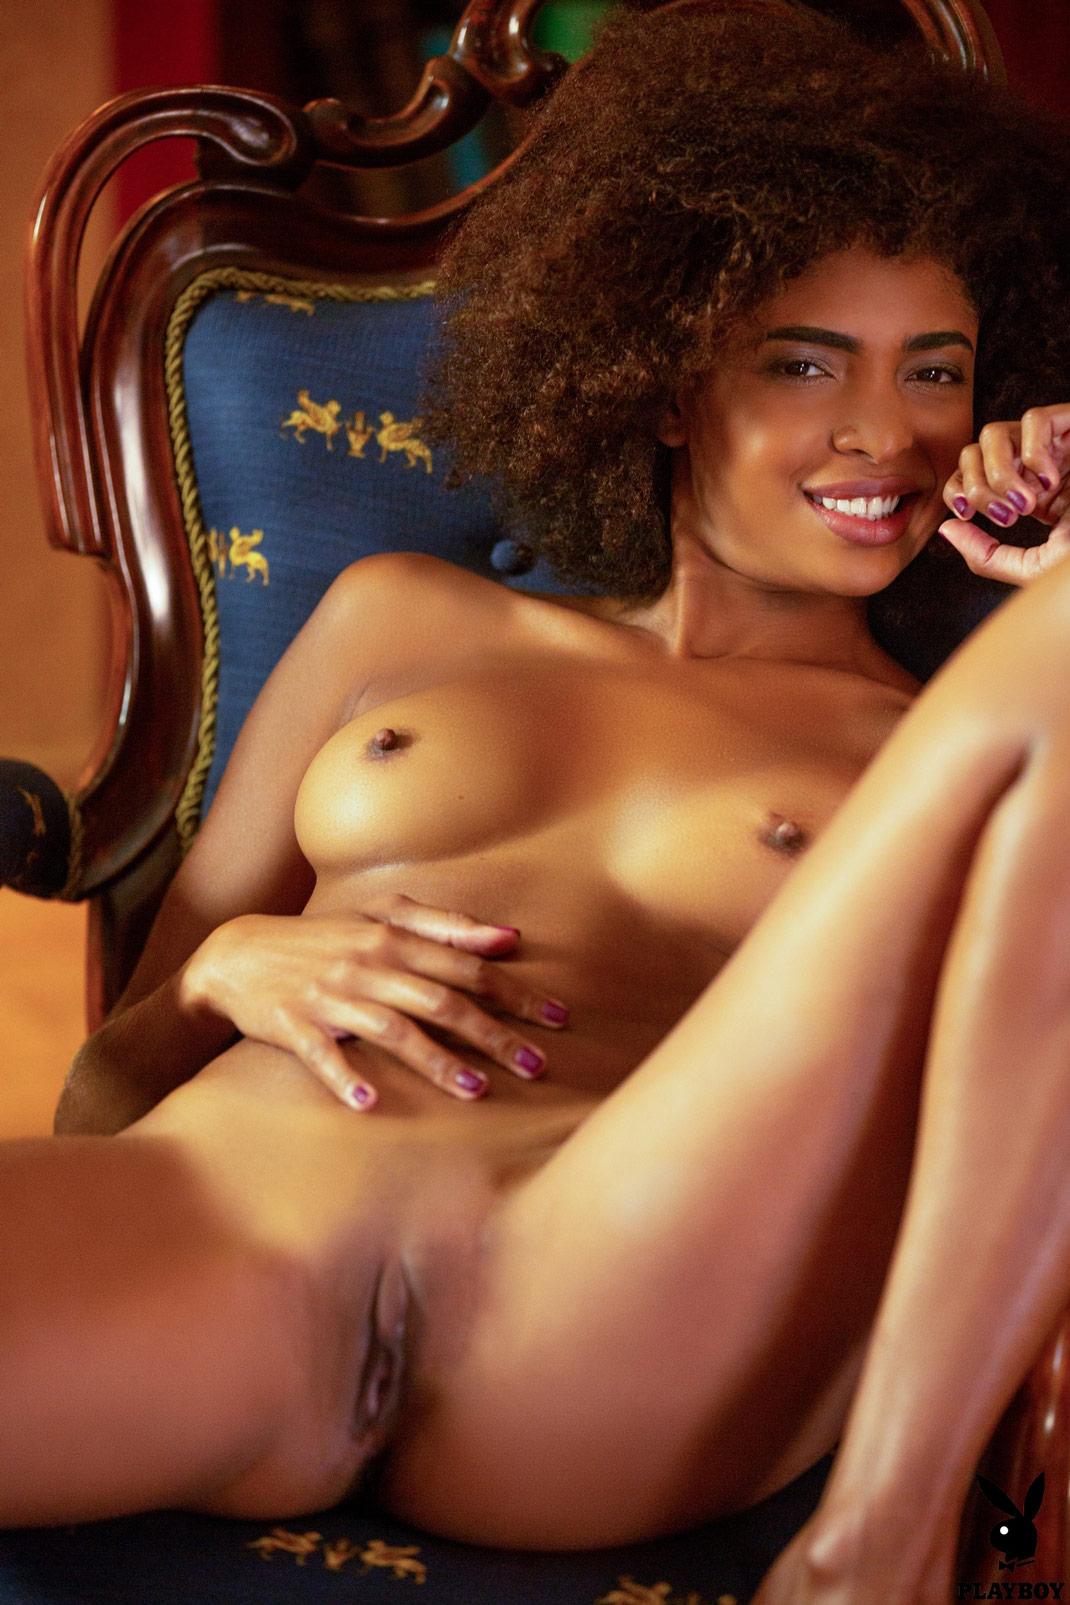 Bruna Rocha Nude - 10 Pictures In An Infinite Scroll-1057